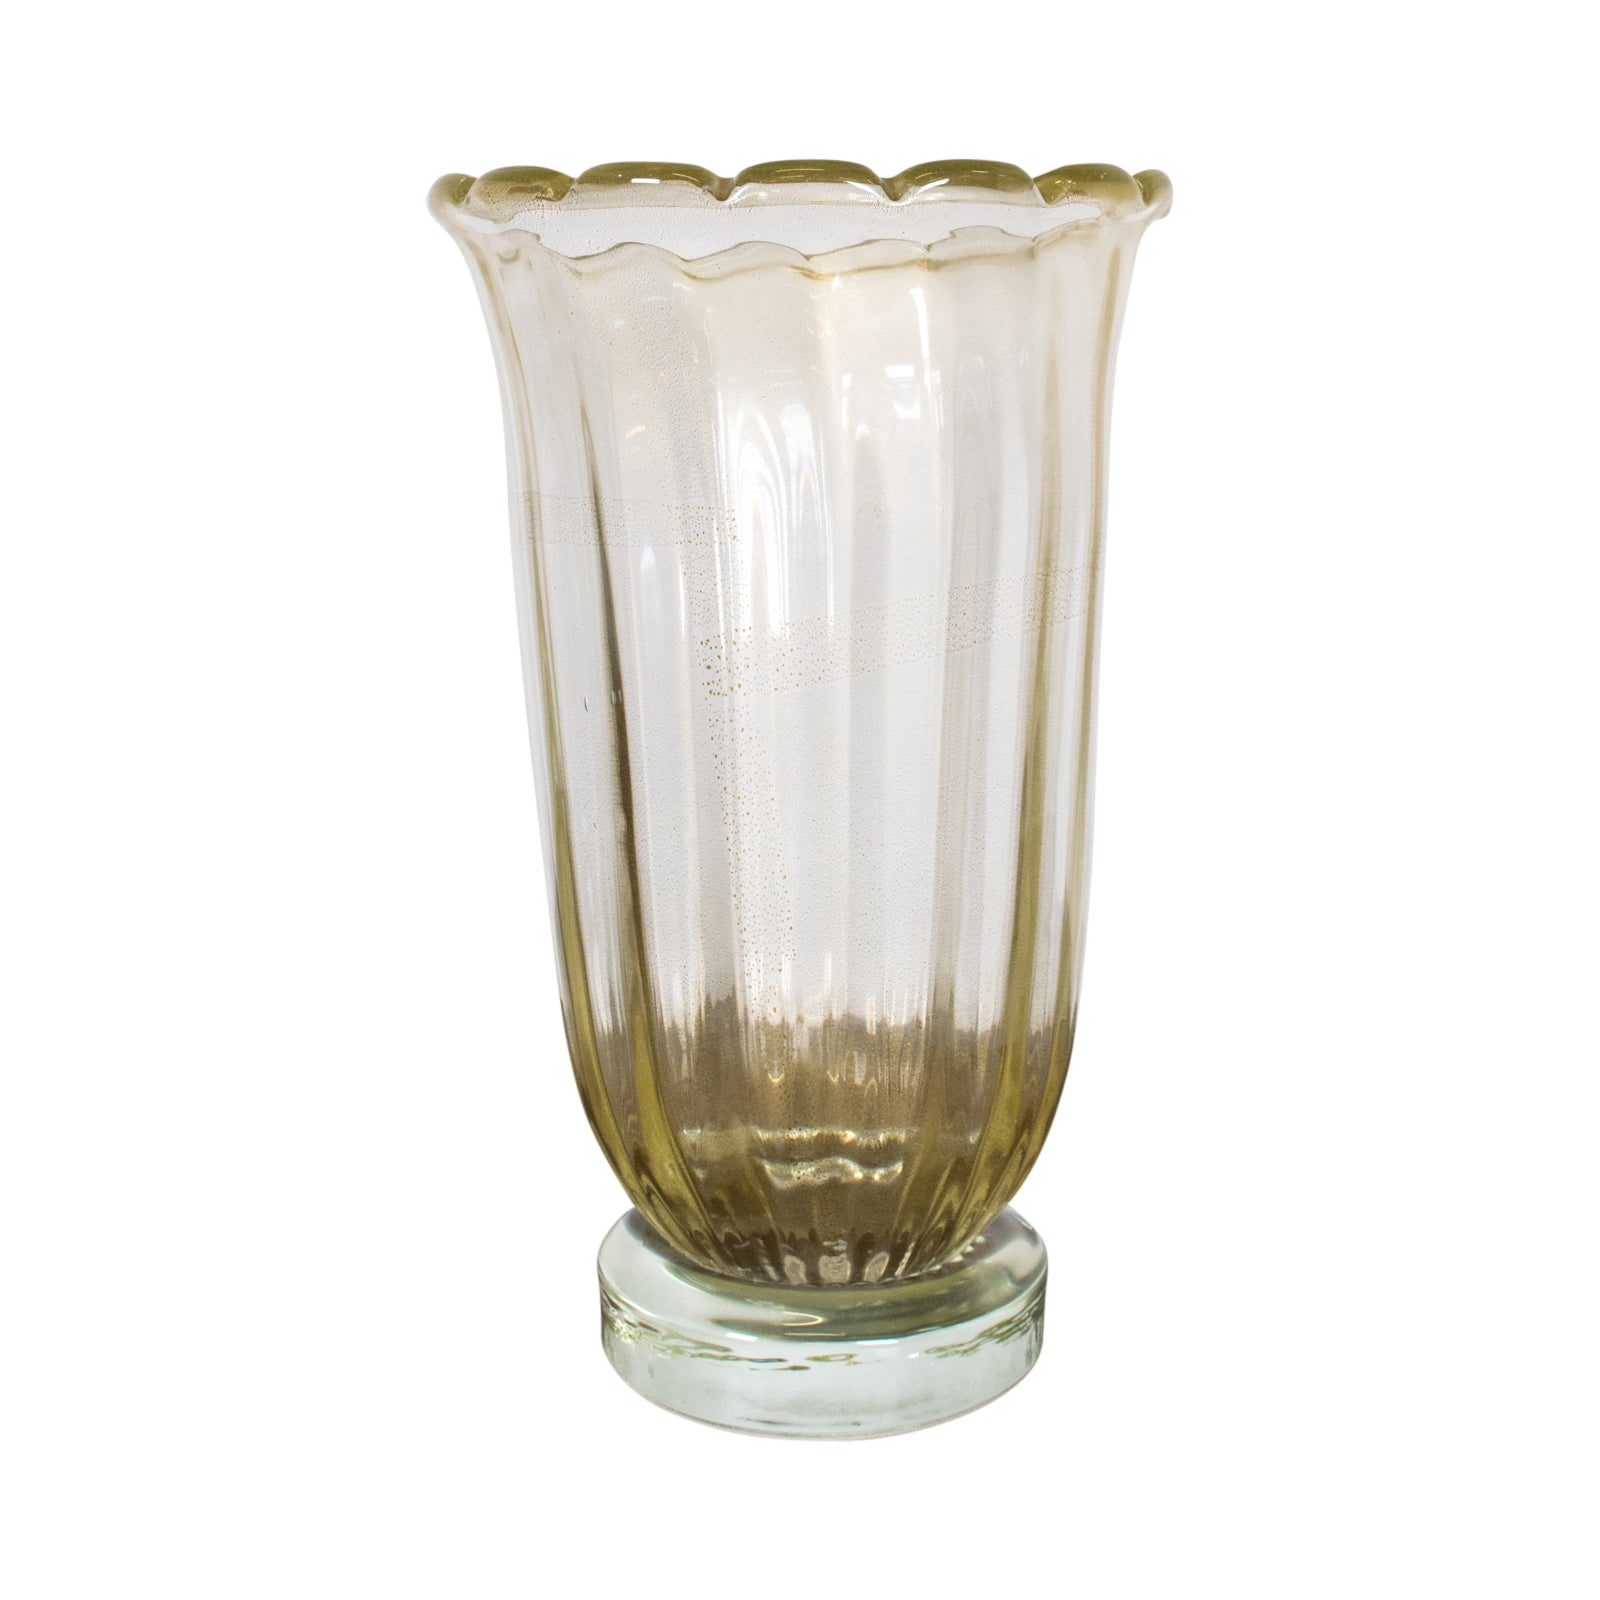 "An ""Avventurrina"" Murano Glass Vase by Sergio Costantini"